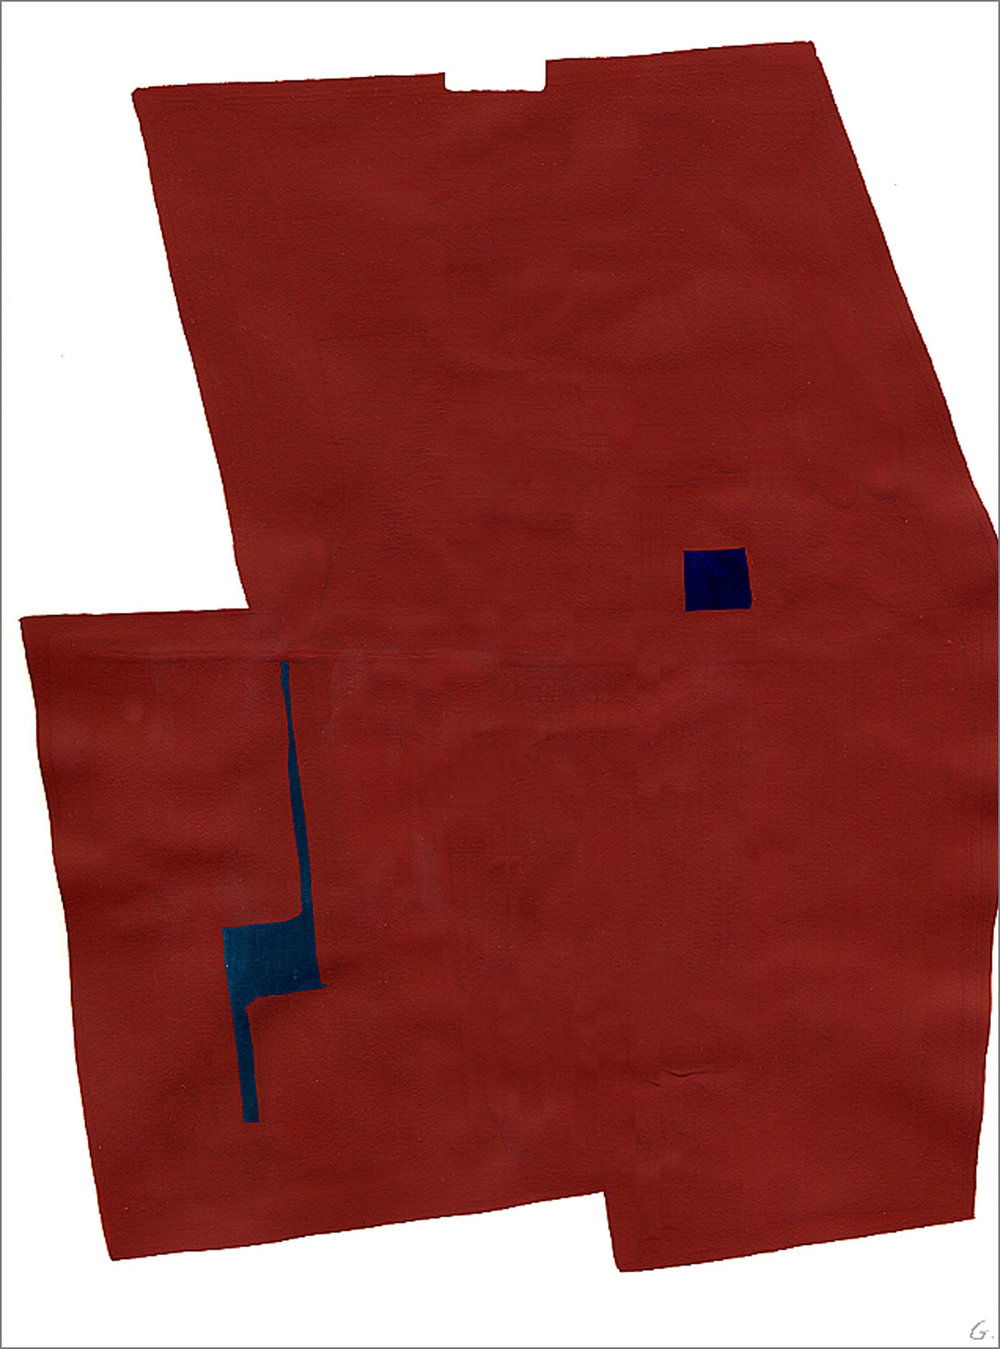 "Fort 2, 2005, W9"" x H12"", gouache on paper."